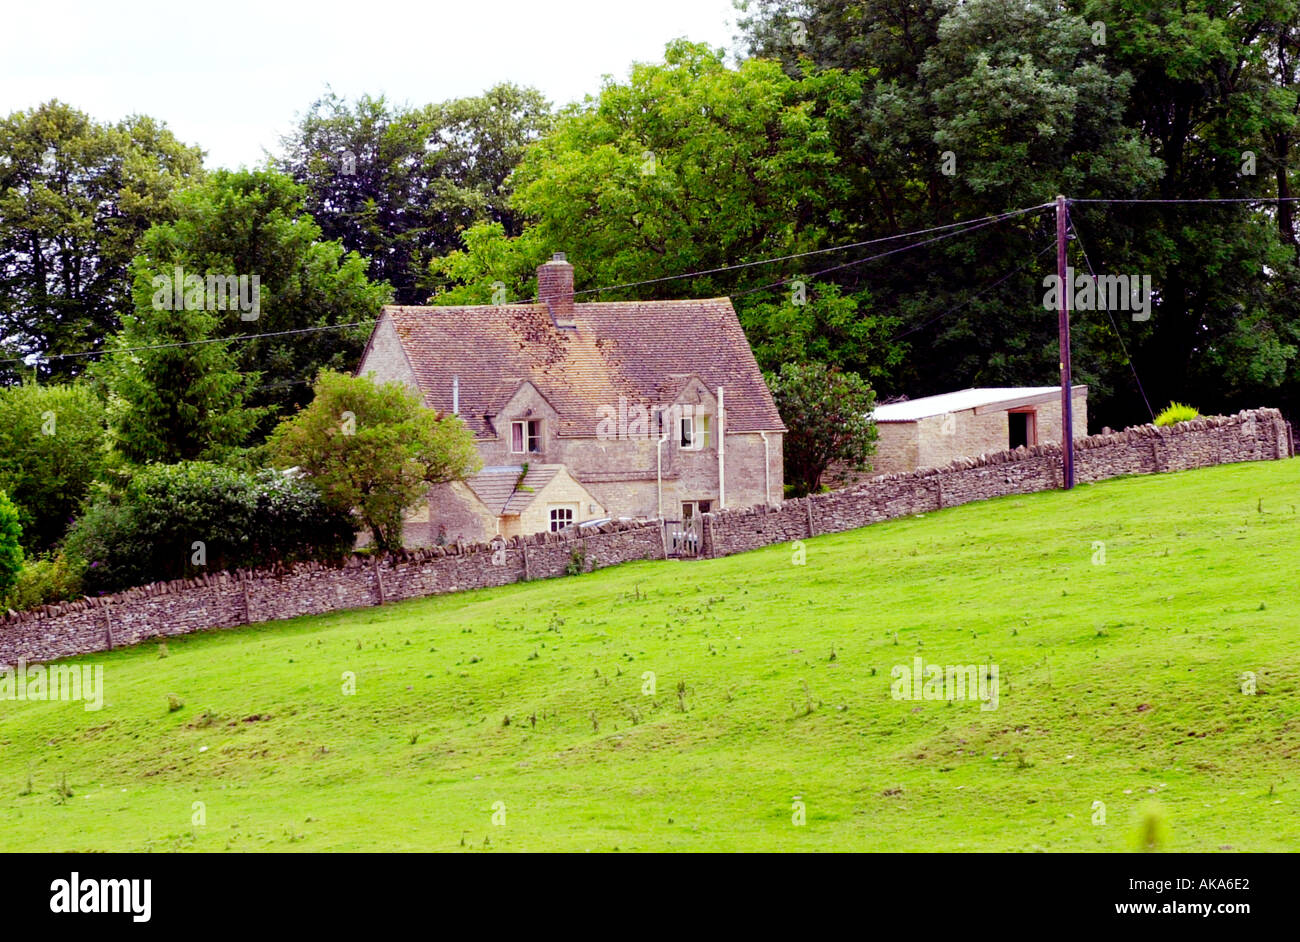 Cottage in the Cottswolds with a farm setting - Stock Image